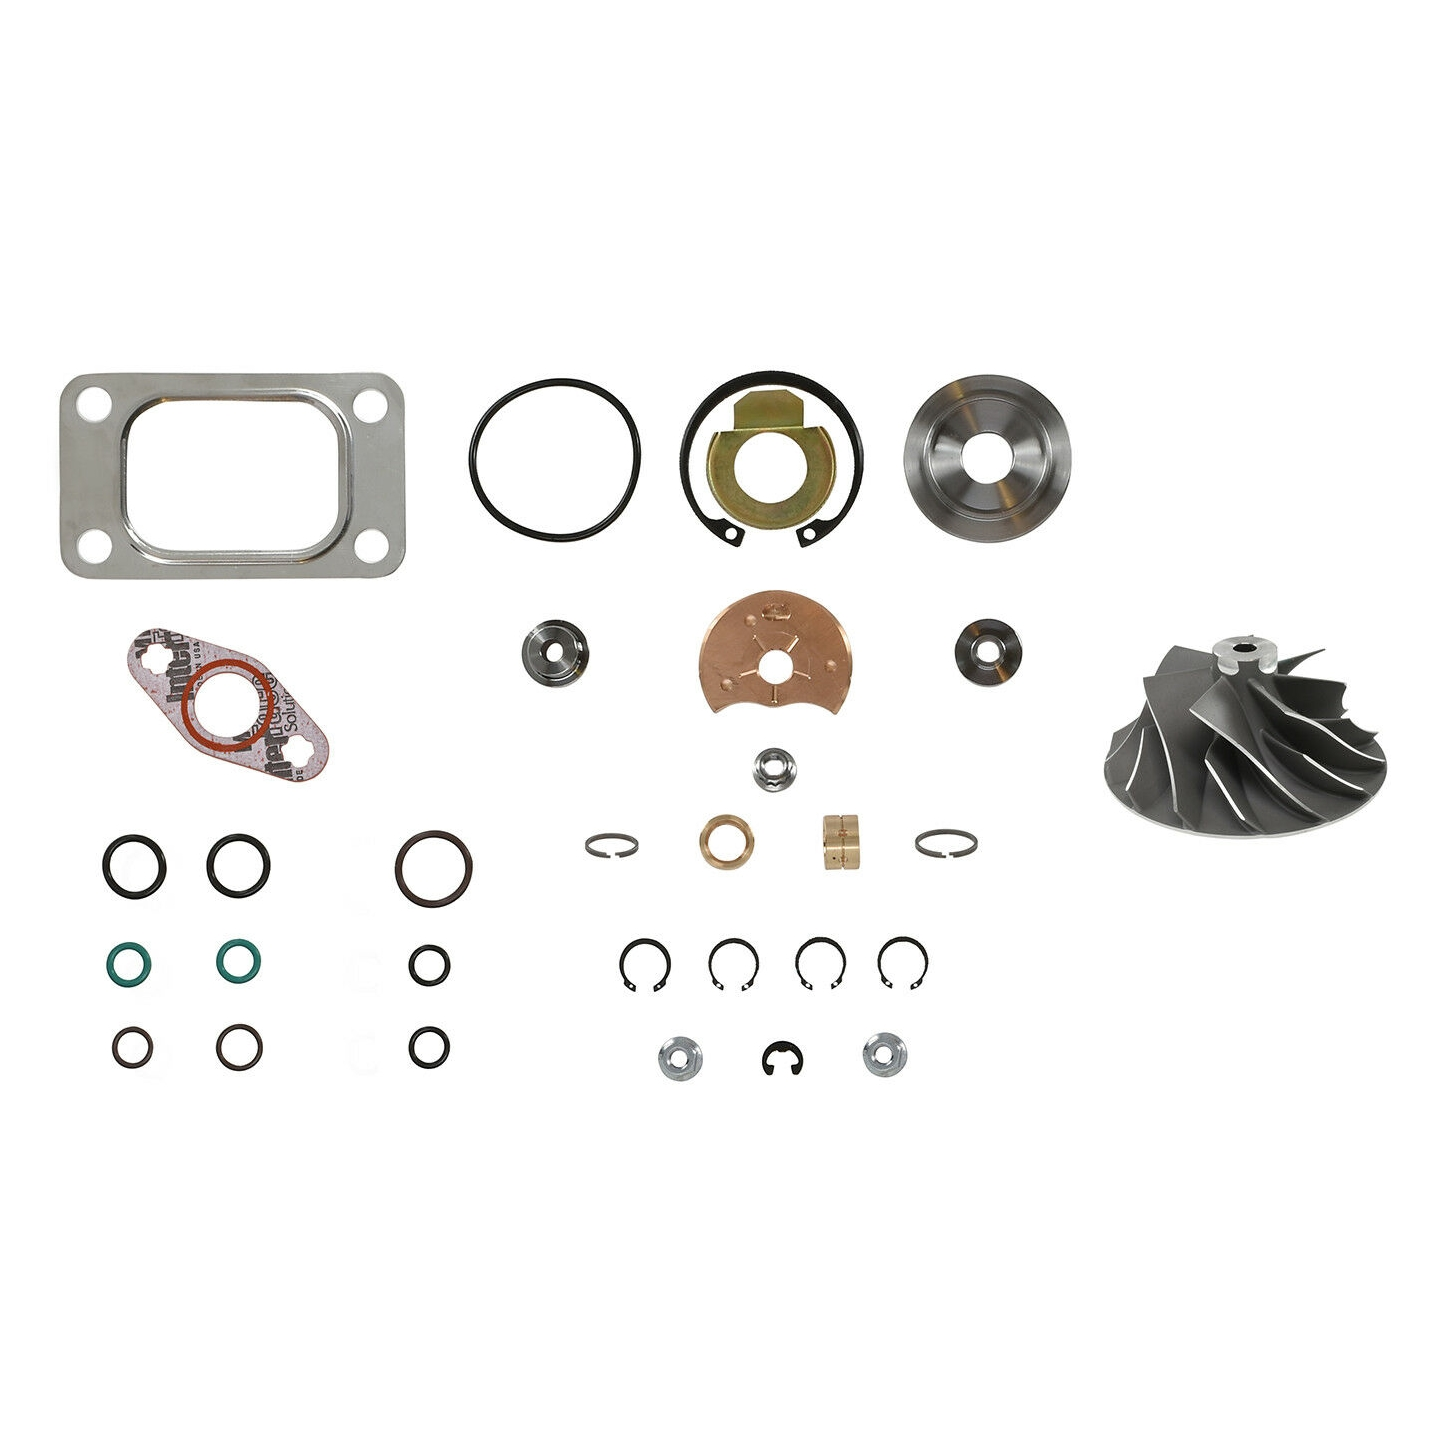 HE351CW Turbo Rebuild Kit Cast Wheel For 04.5-07 5.9L ISB Dodge Ram Cummins Diesel